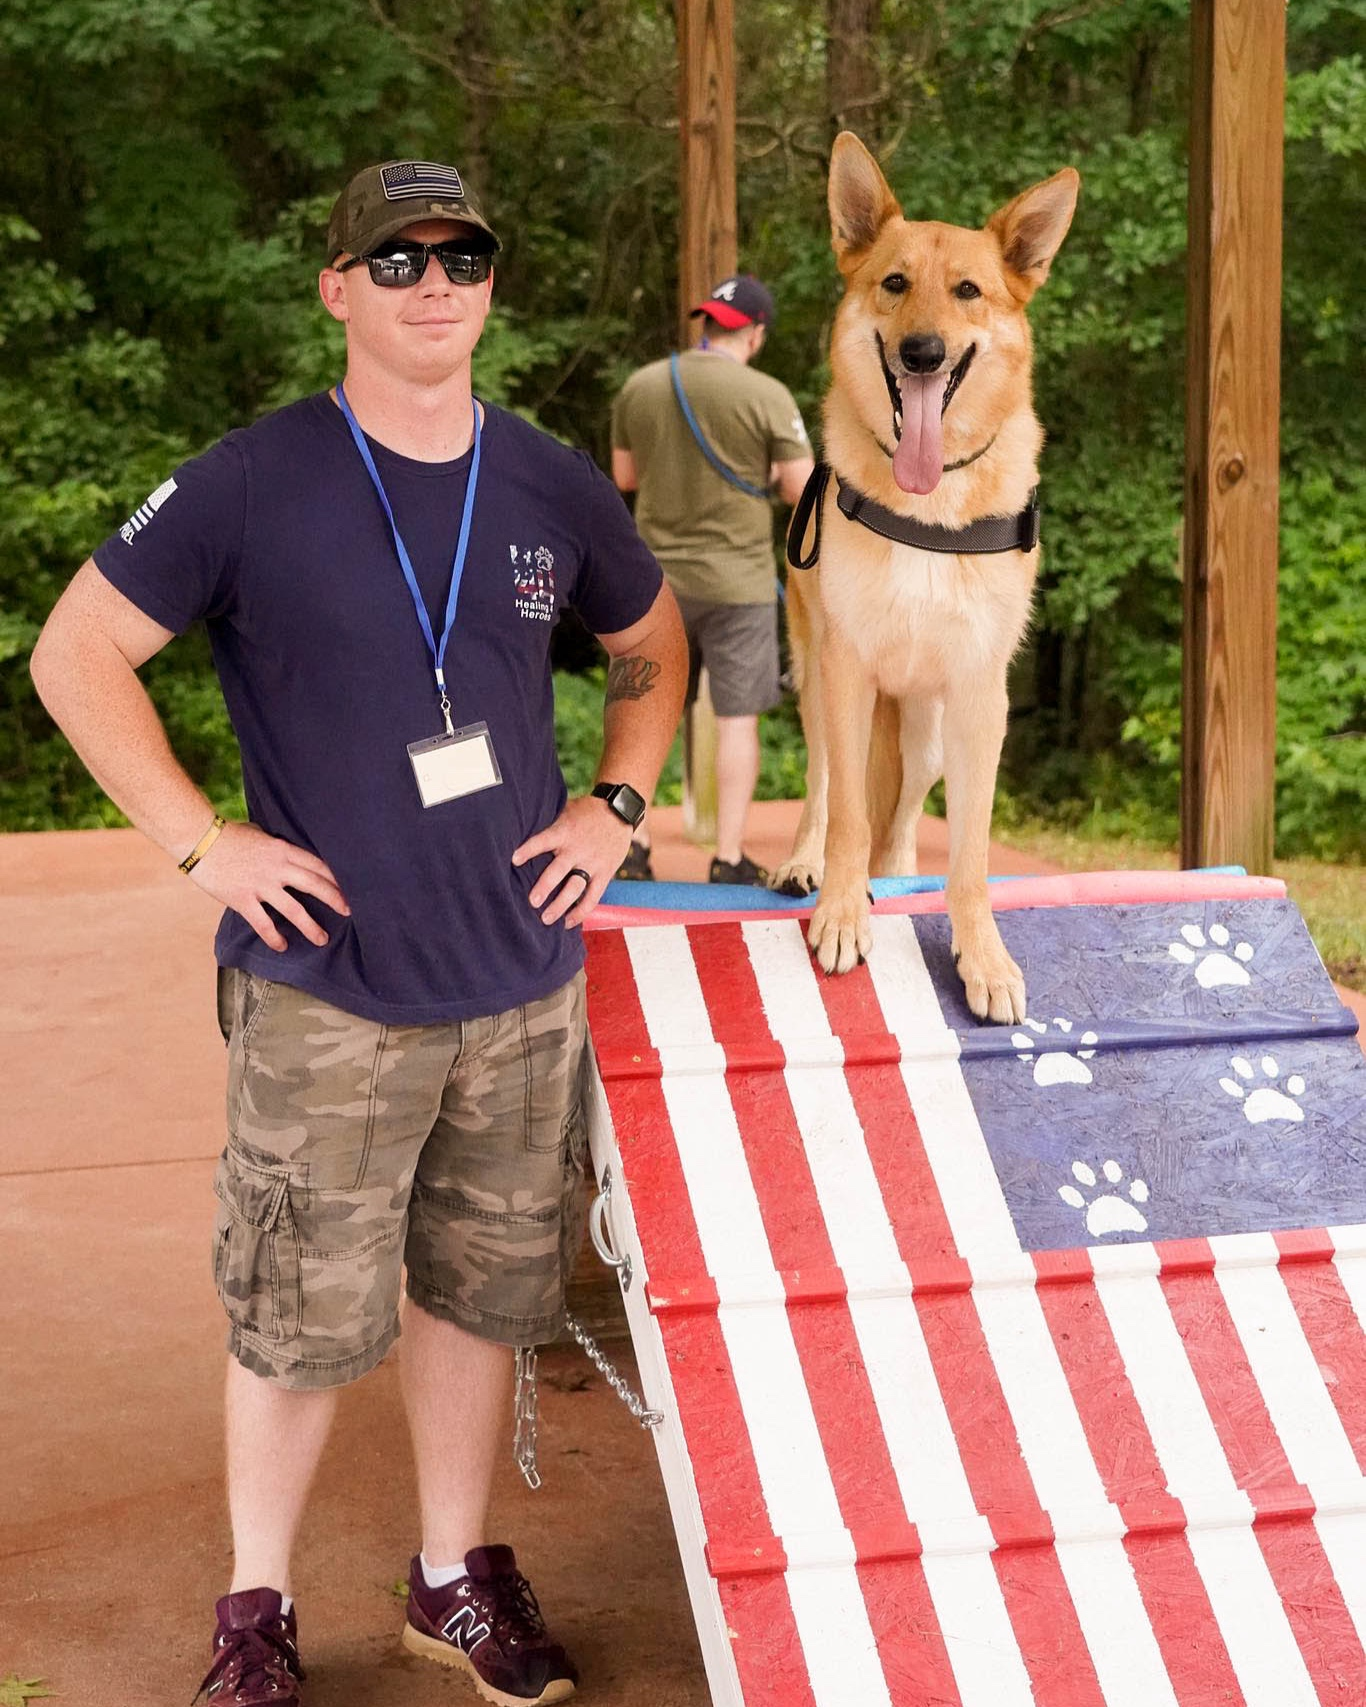 Our mission - Healing4Heroes™ is a 501(c)(3) non-profit organization dedicated to assisting our military service members and veterans lead healthy, productive lives. Our objective is to connect wounded service members, as well as those with Post Traumatic Stress Disorder and Traumatic Brain Injury, with A.D.A. compliant service dogs.